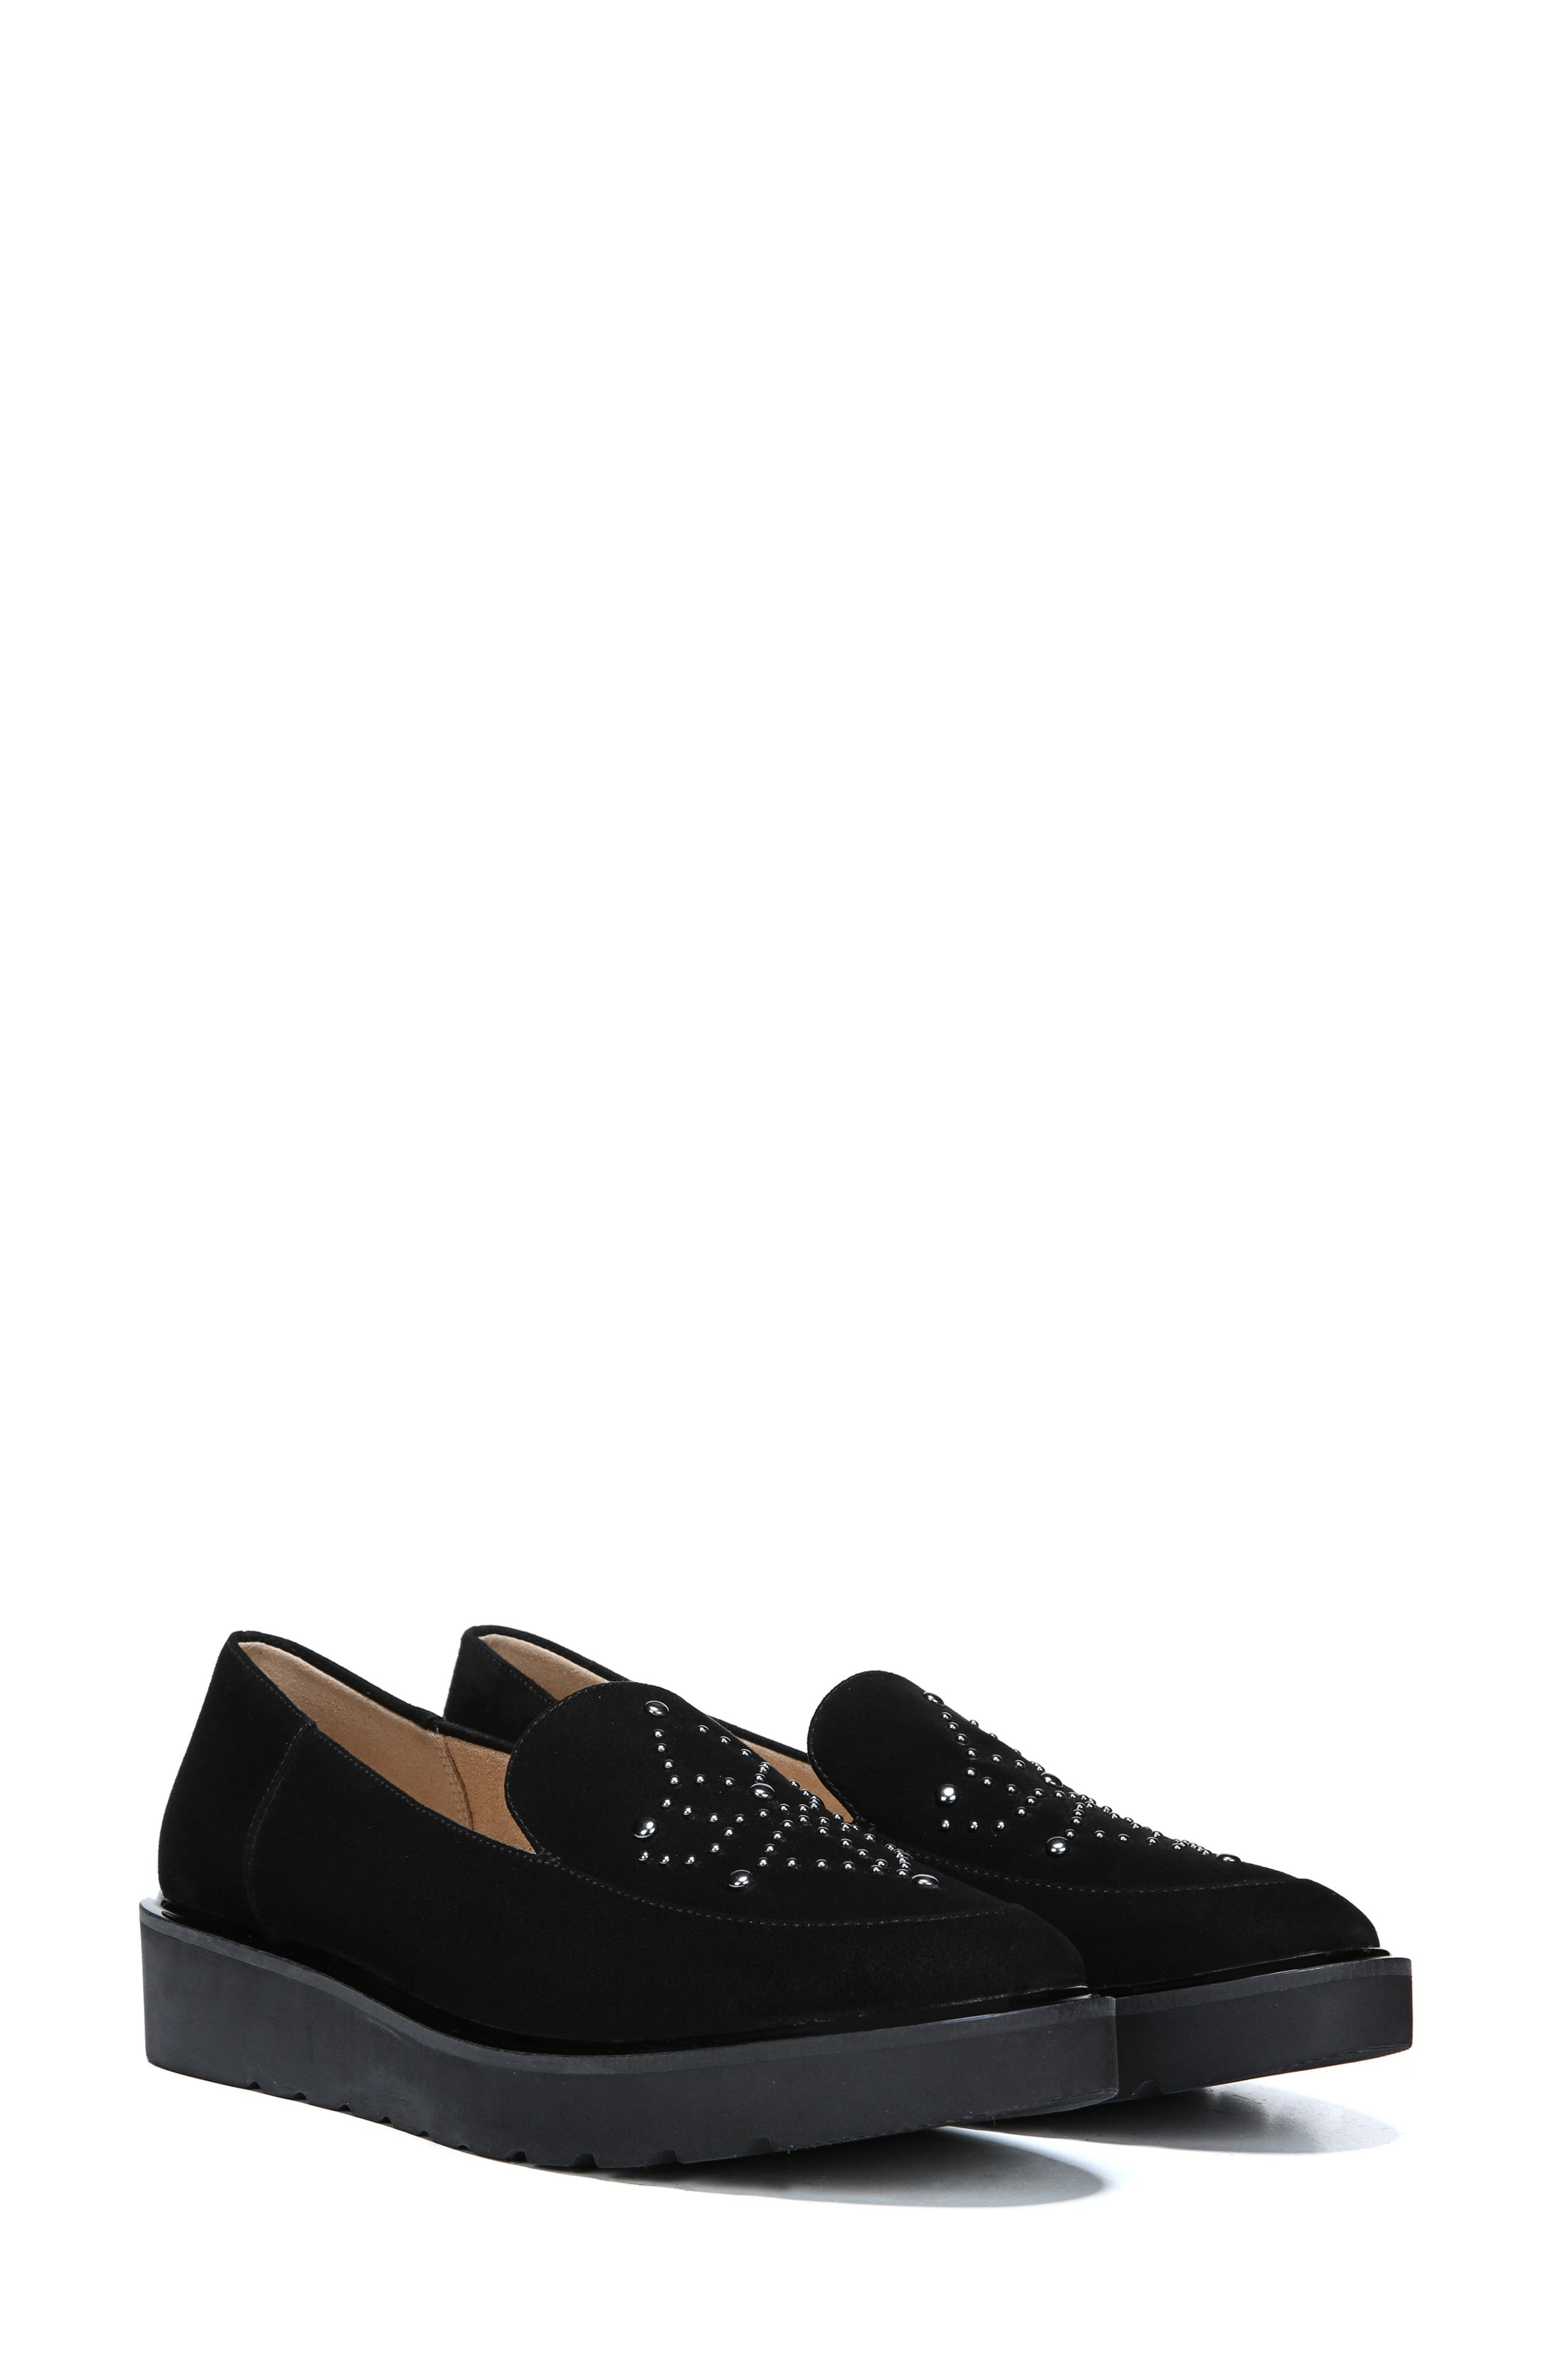 Andie Loafer,                             Alternate thumbnail 5, color,                             BLACK SUEDE